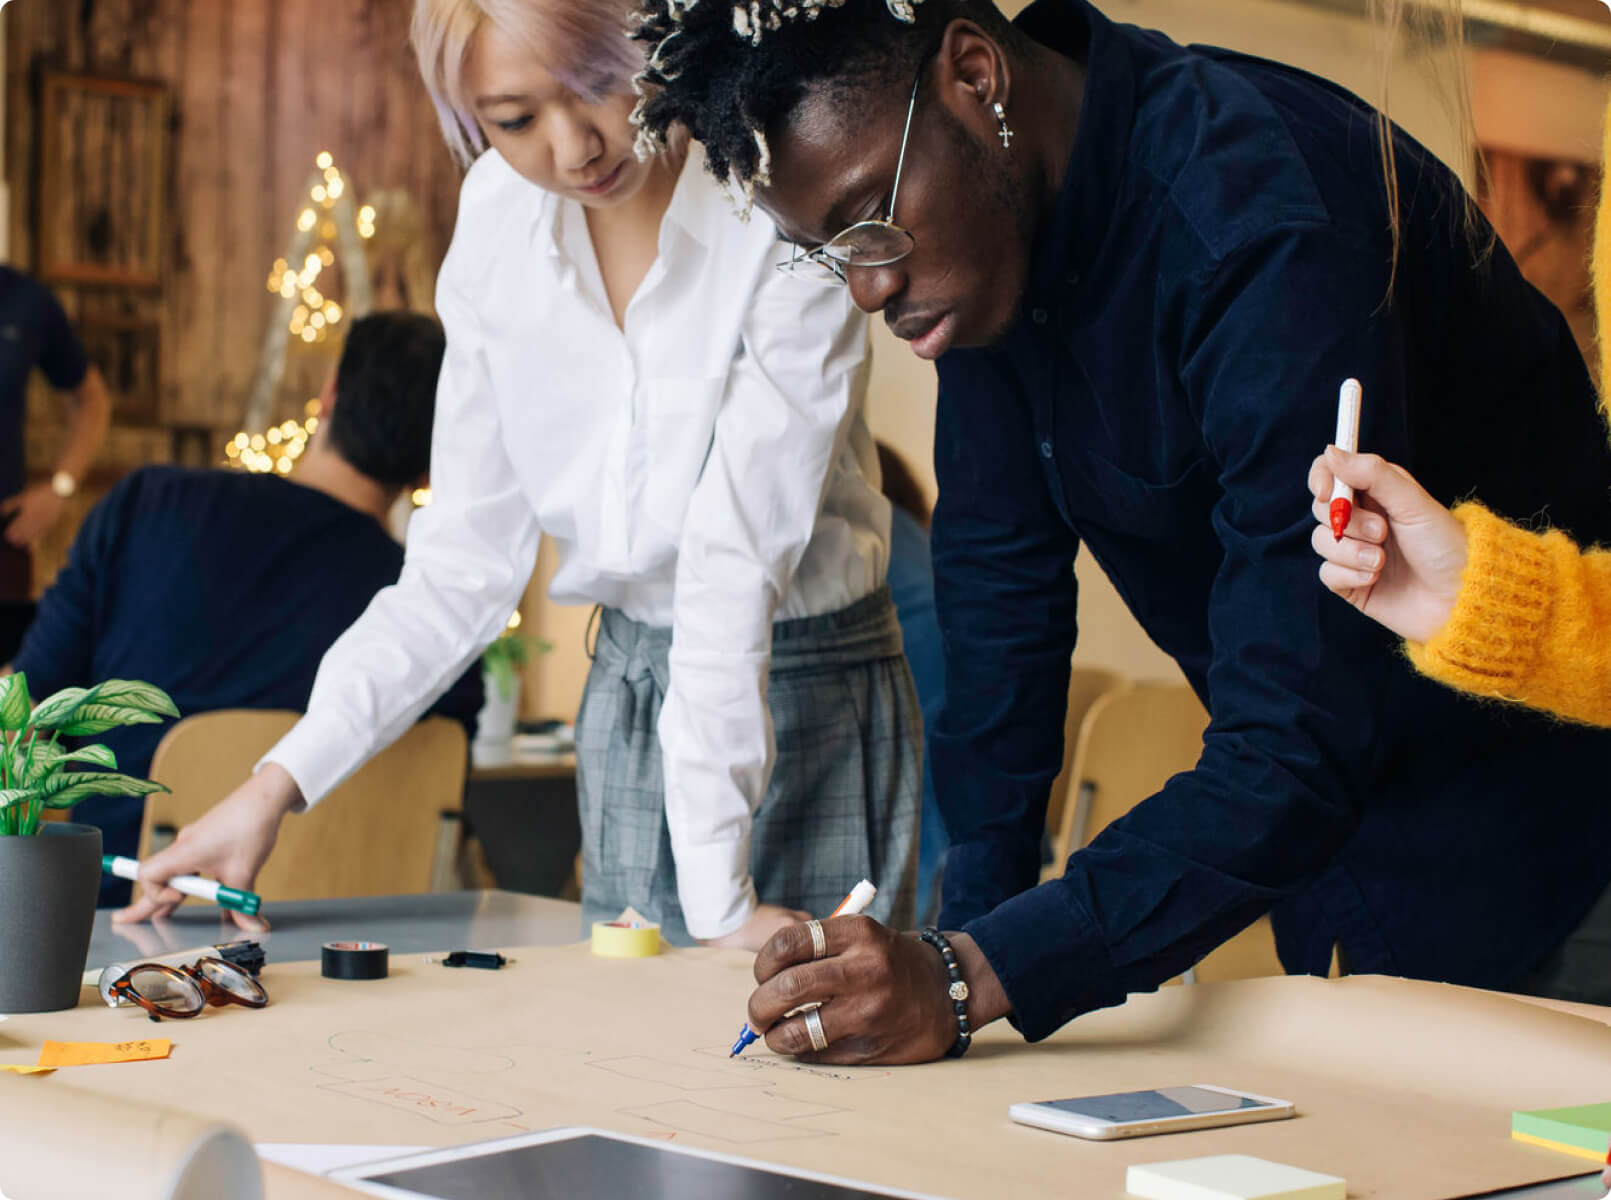 photo of a man and woman working at a table